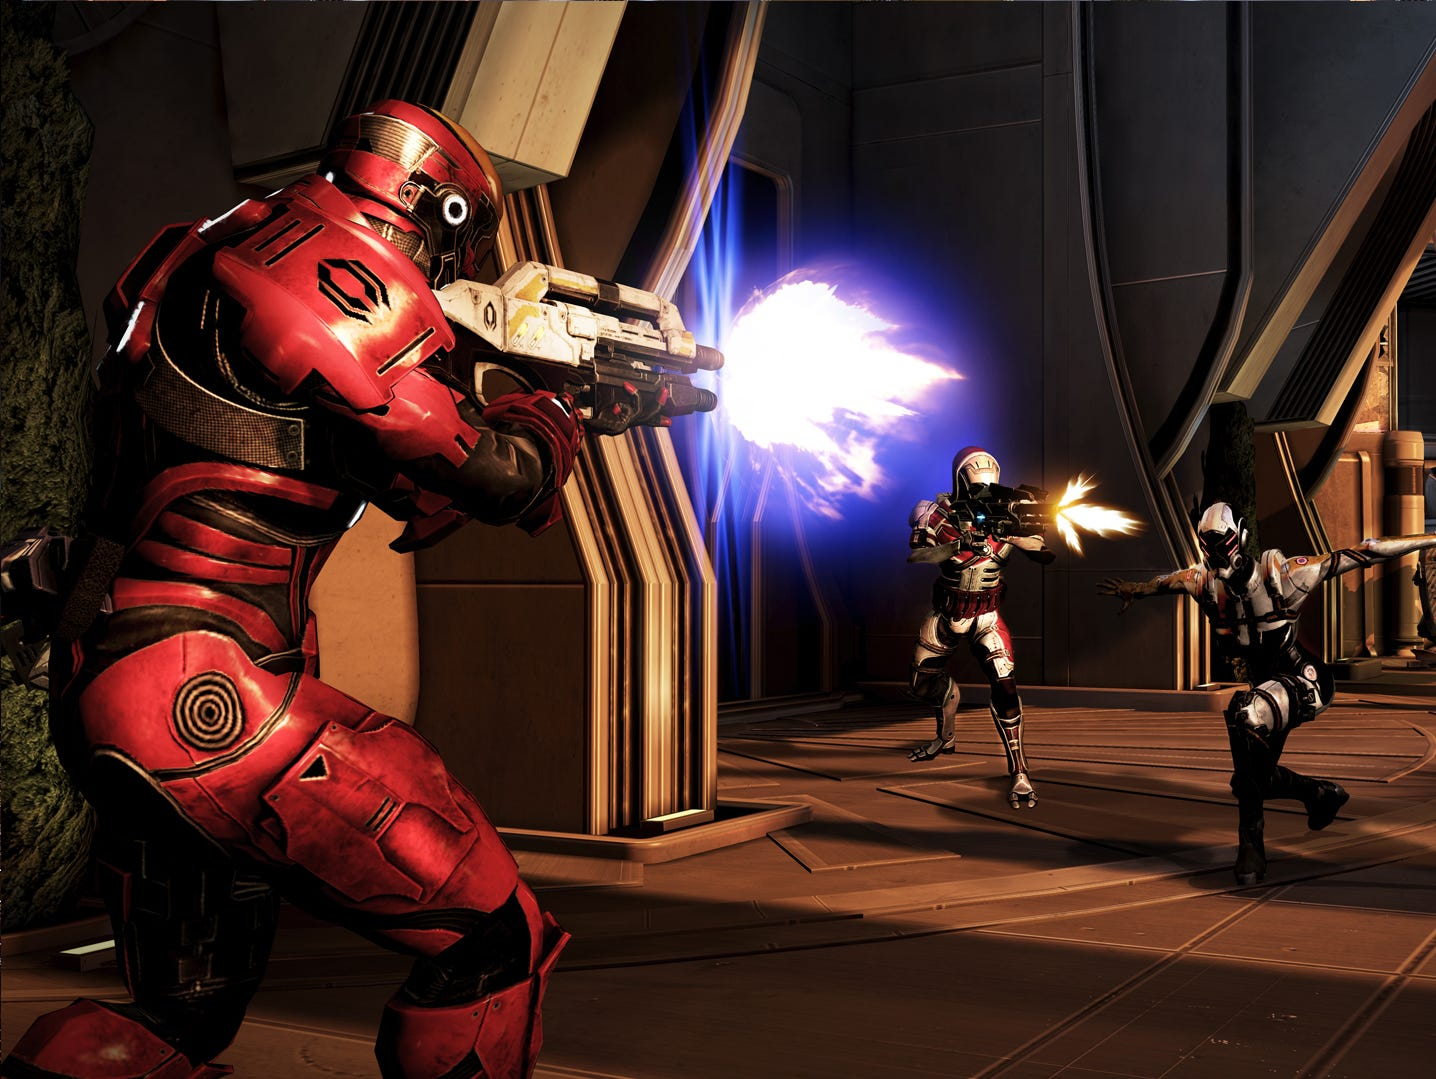 A scene from 2012's Mass Effect 3.